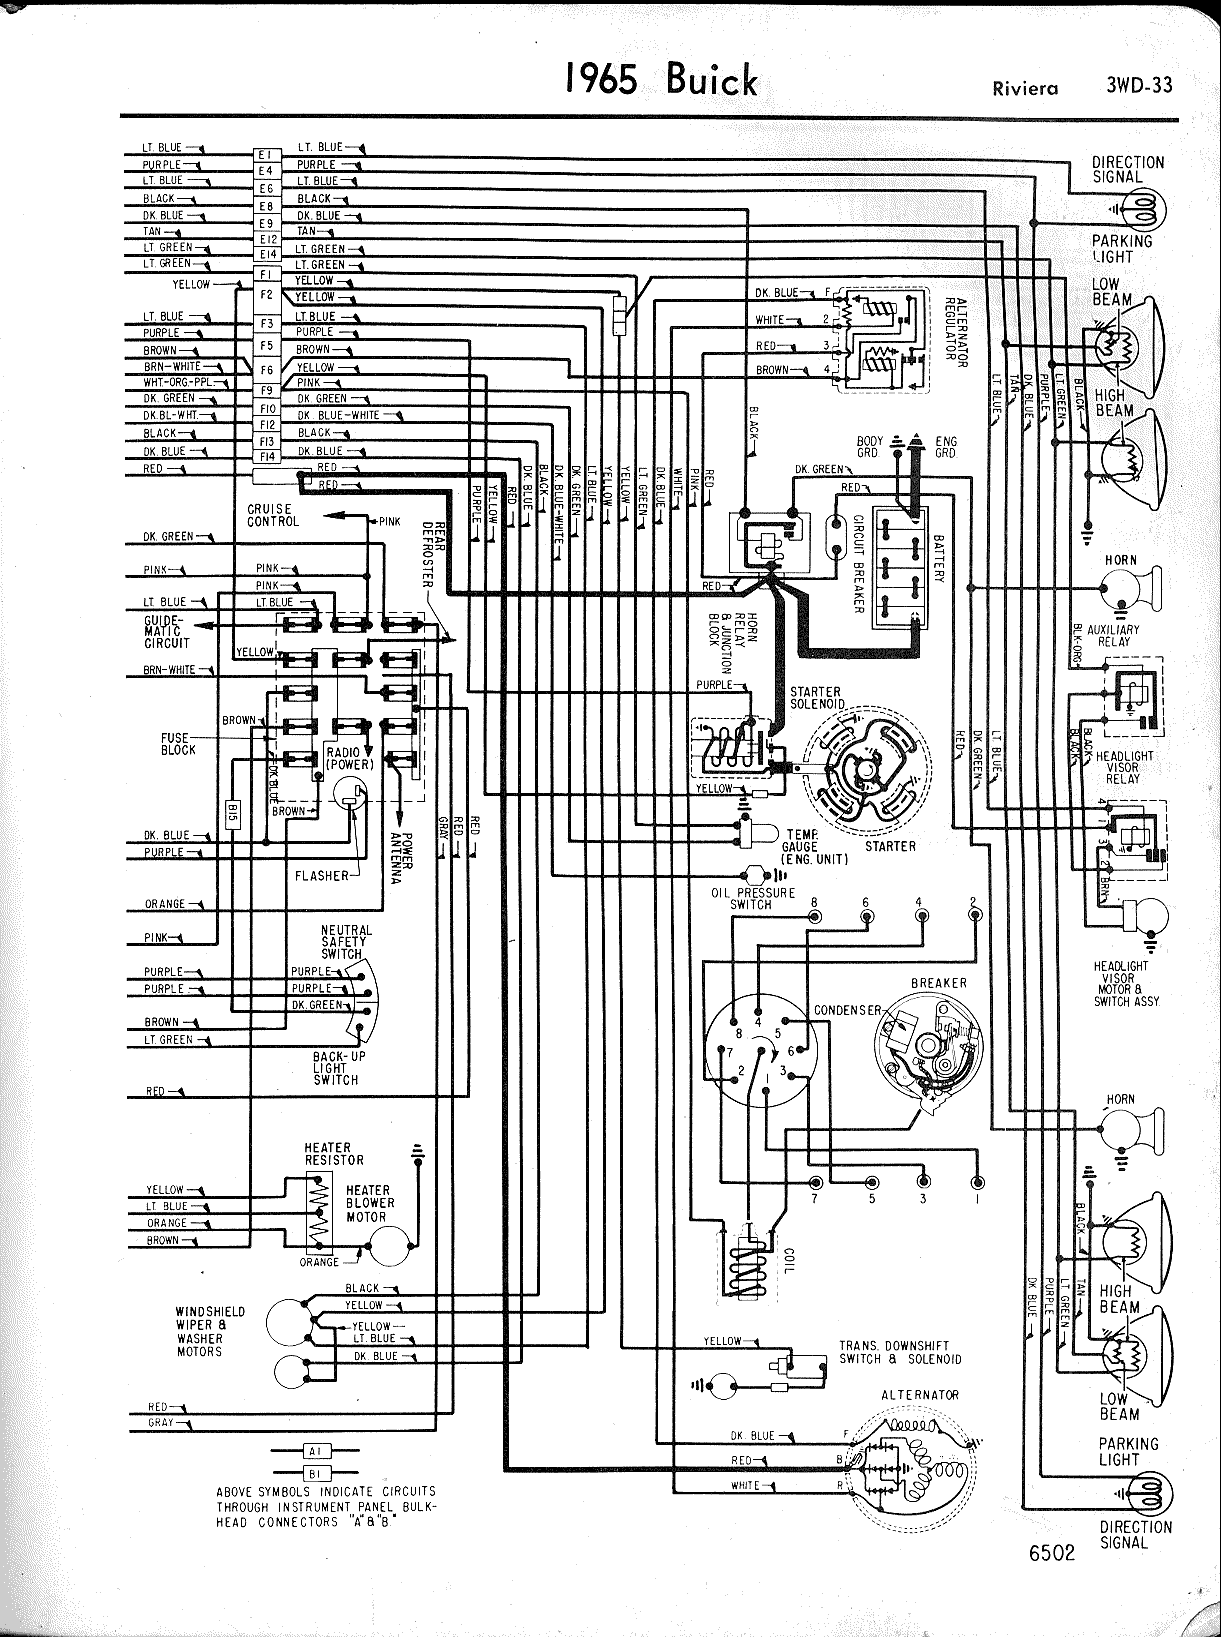 Buick Wiring Diagrams 1957 1965 1968 Corvette Alternator Diagram Riviera Right Half